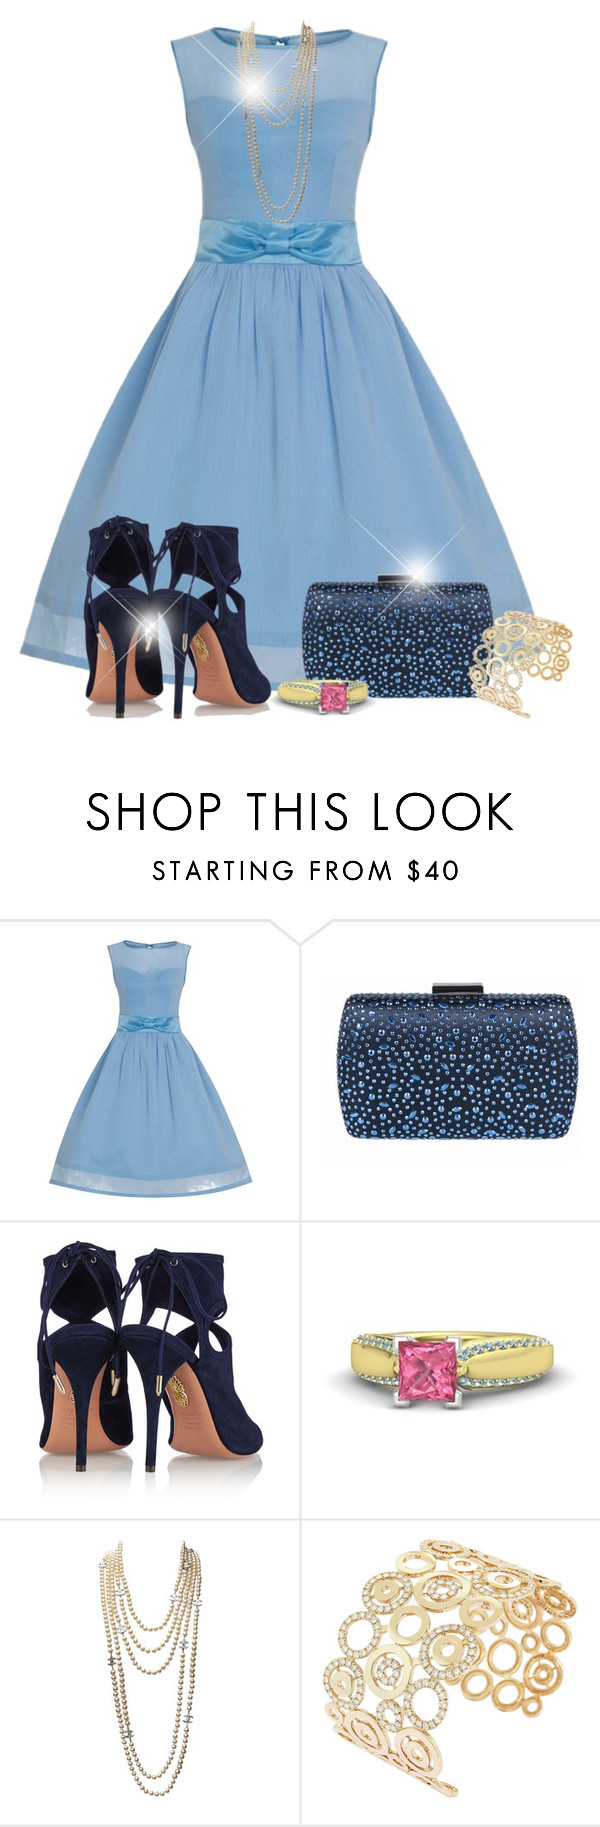 """Untitled #2294"" by jodilambdin ❤ liked on Polyvore featuring Aquazzura, Gemvara and Chanel"